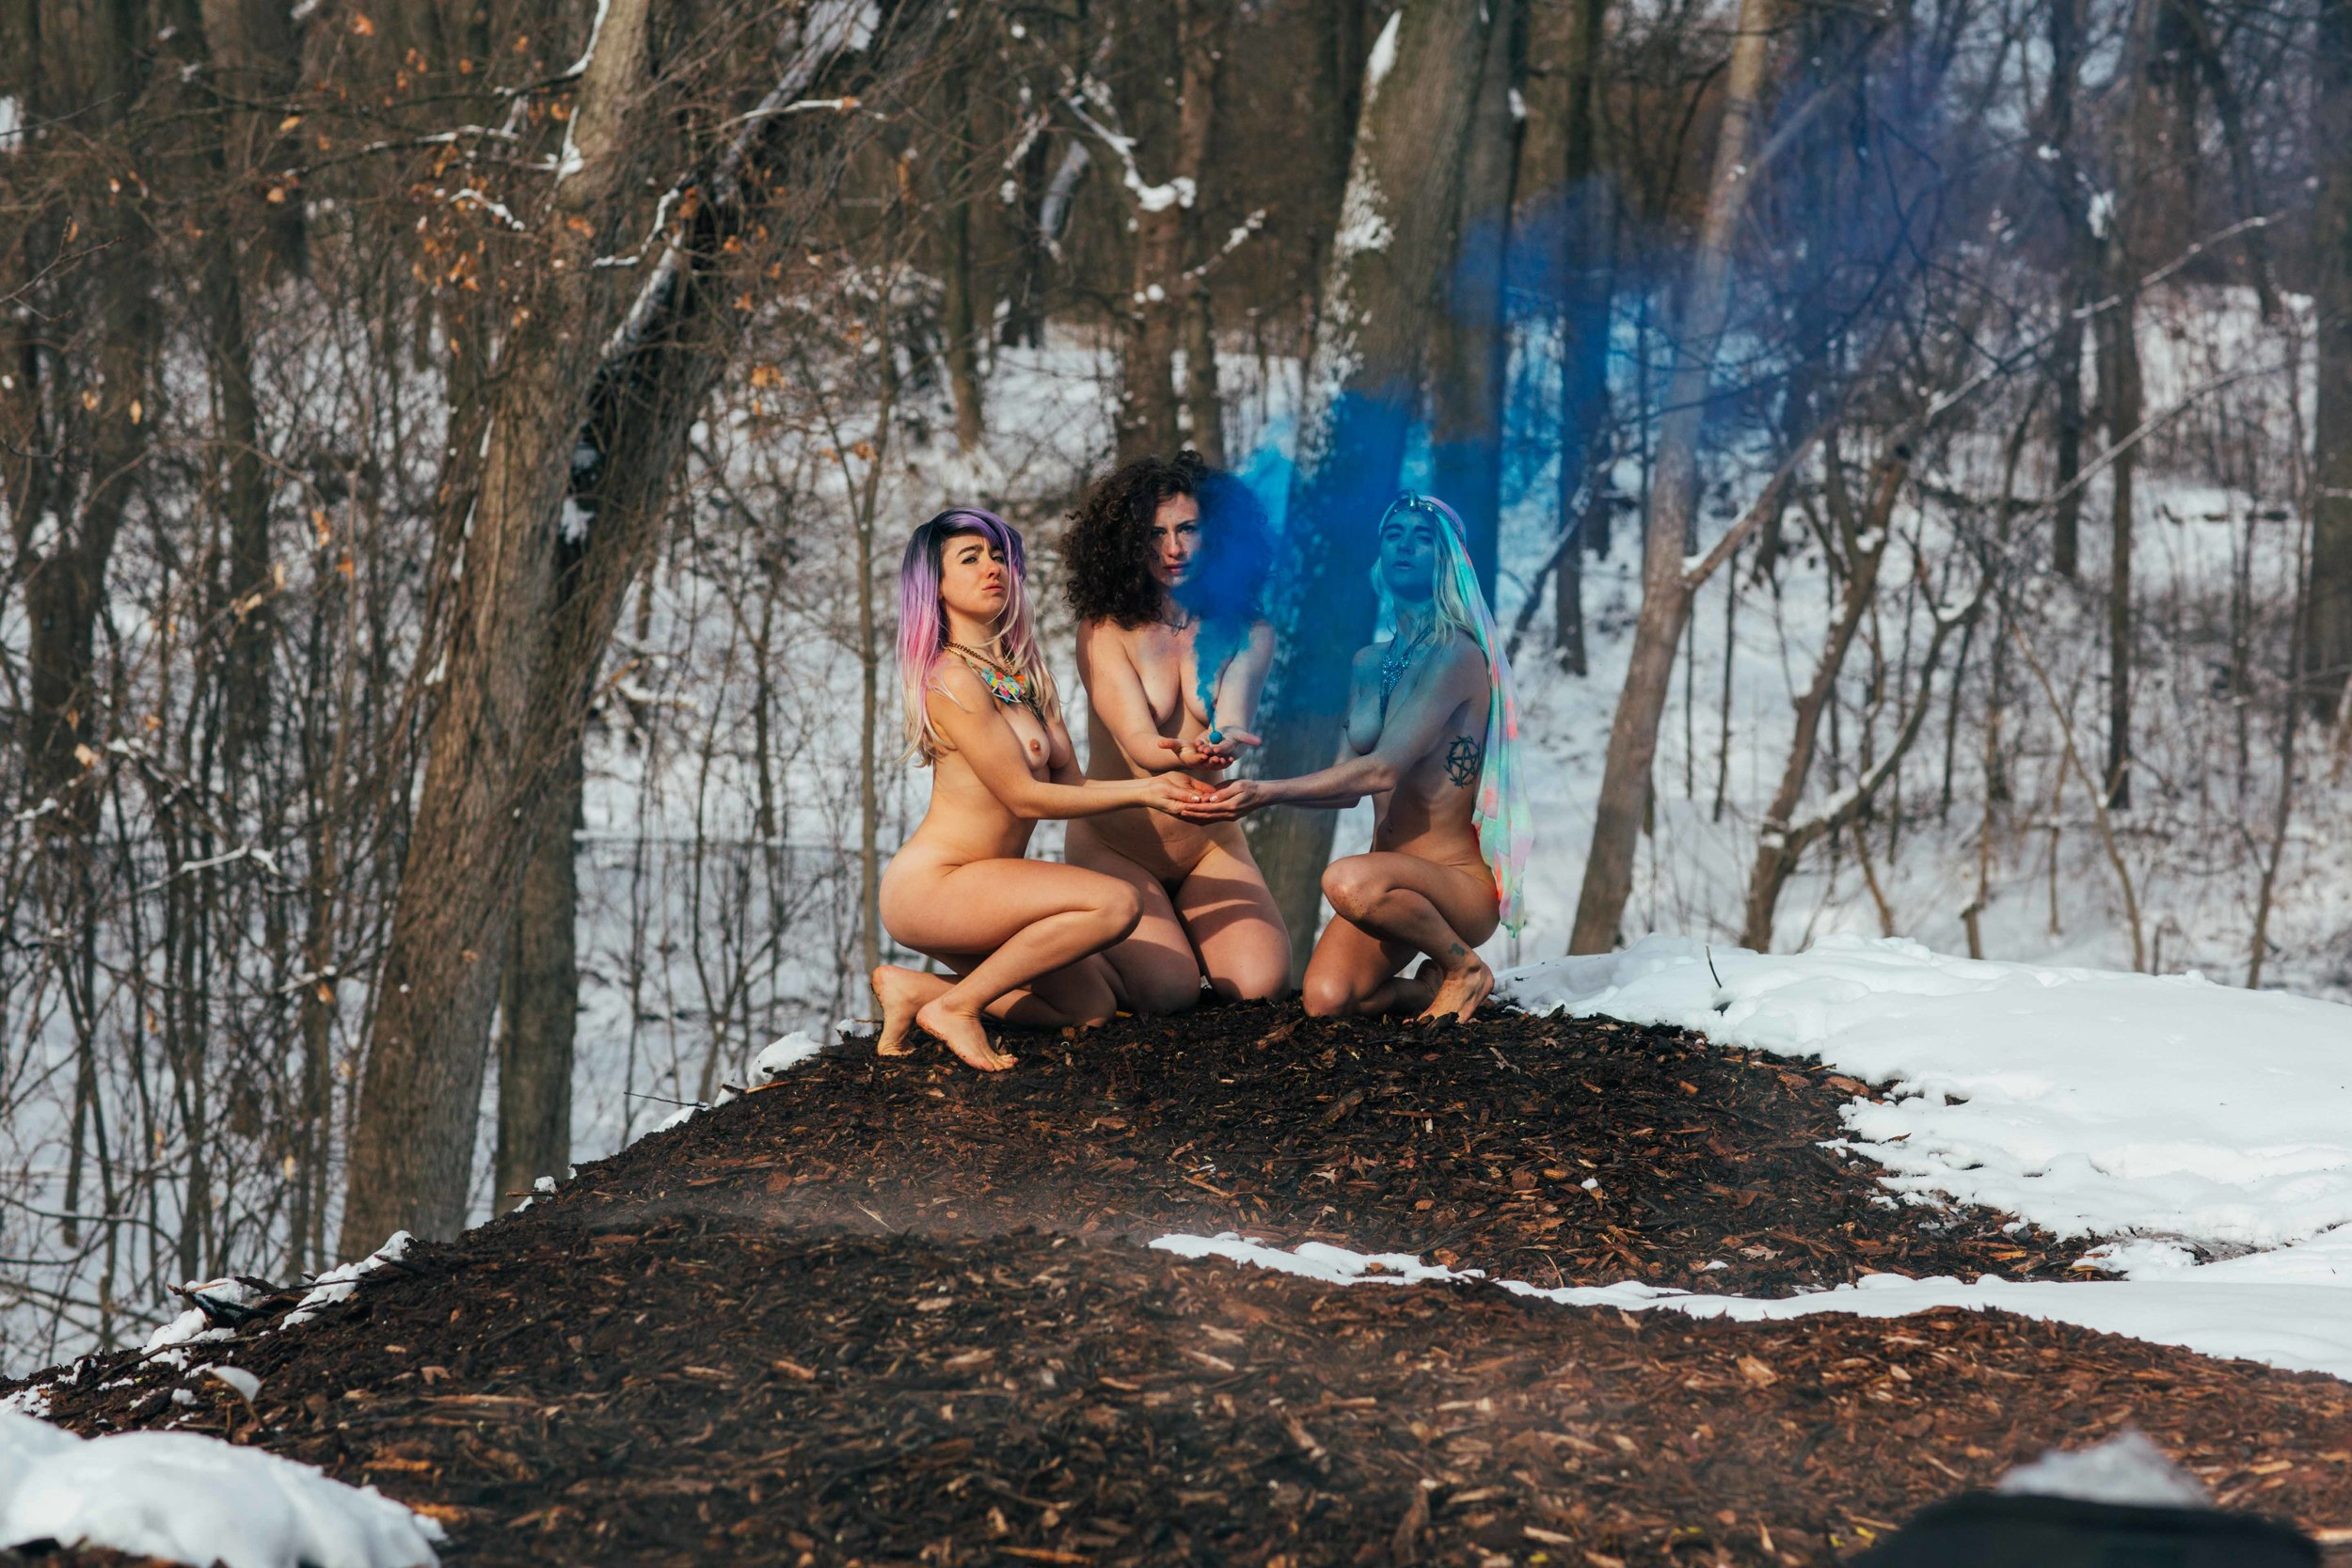 Go! Push Pops and Laura Weyl ritualize naked in Prospect park during the dead of winter, photo: Ian Reid, 2015